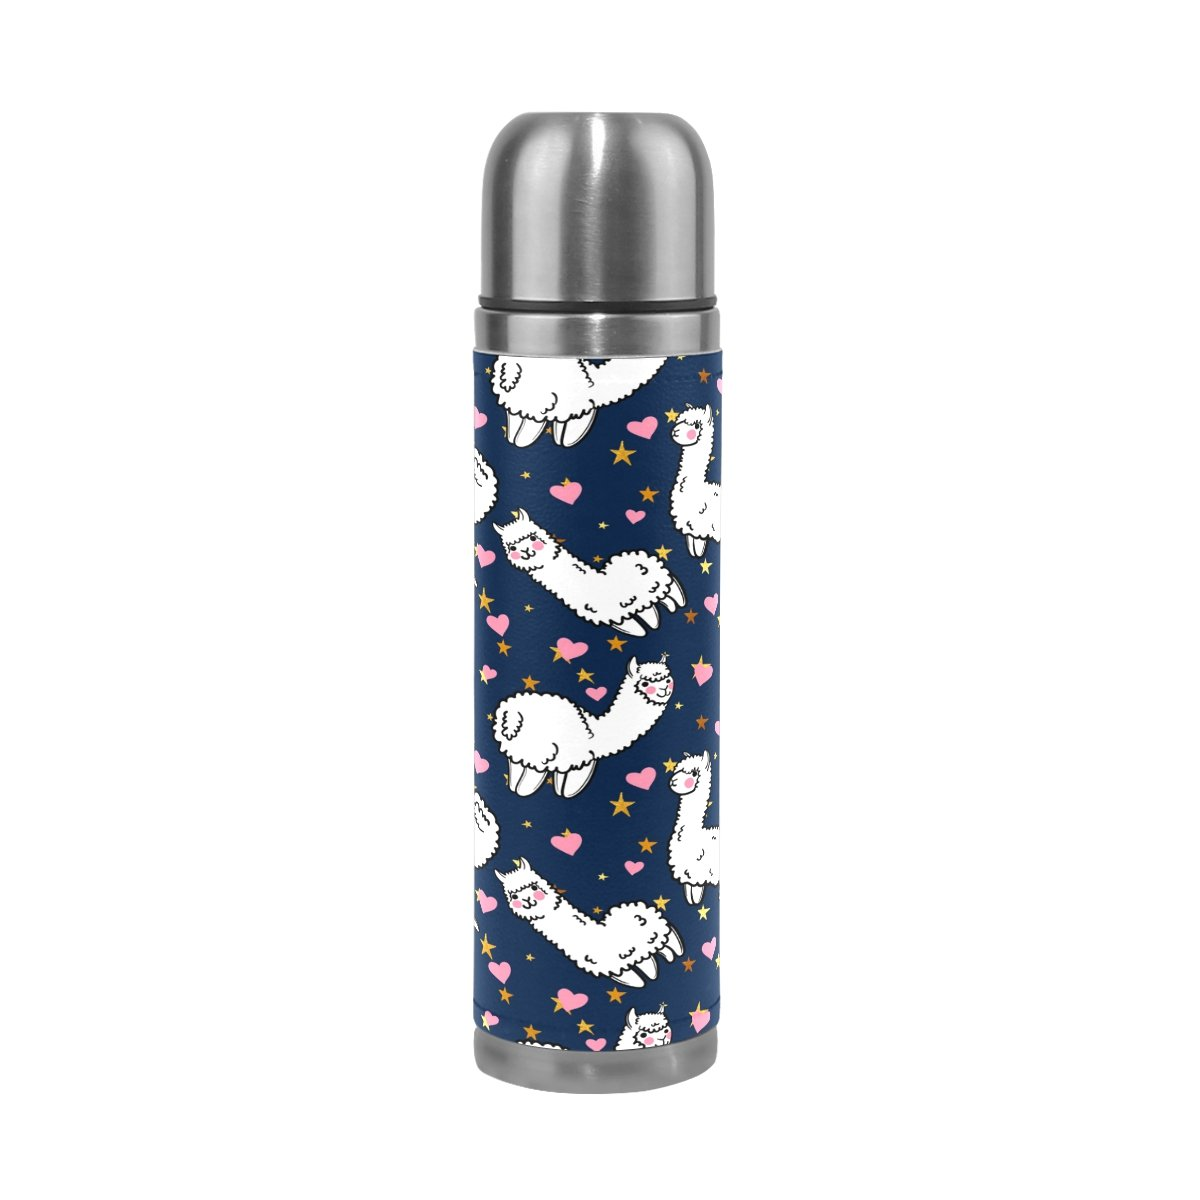 QQMARKET Alpacas Pink Heart Star Double Wall Vacuum Cup Insulated Stainless Steel PU Leather Travel Mug Bottle, Cartoon Animal Blue Christmas Birthday Gifts for Mom Dad Boys Girls Kids Lover Fr